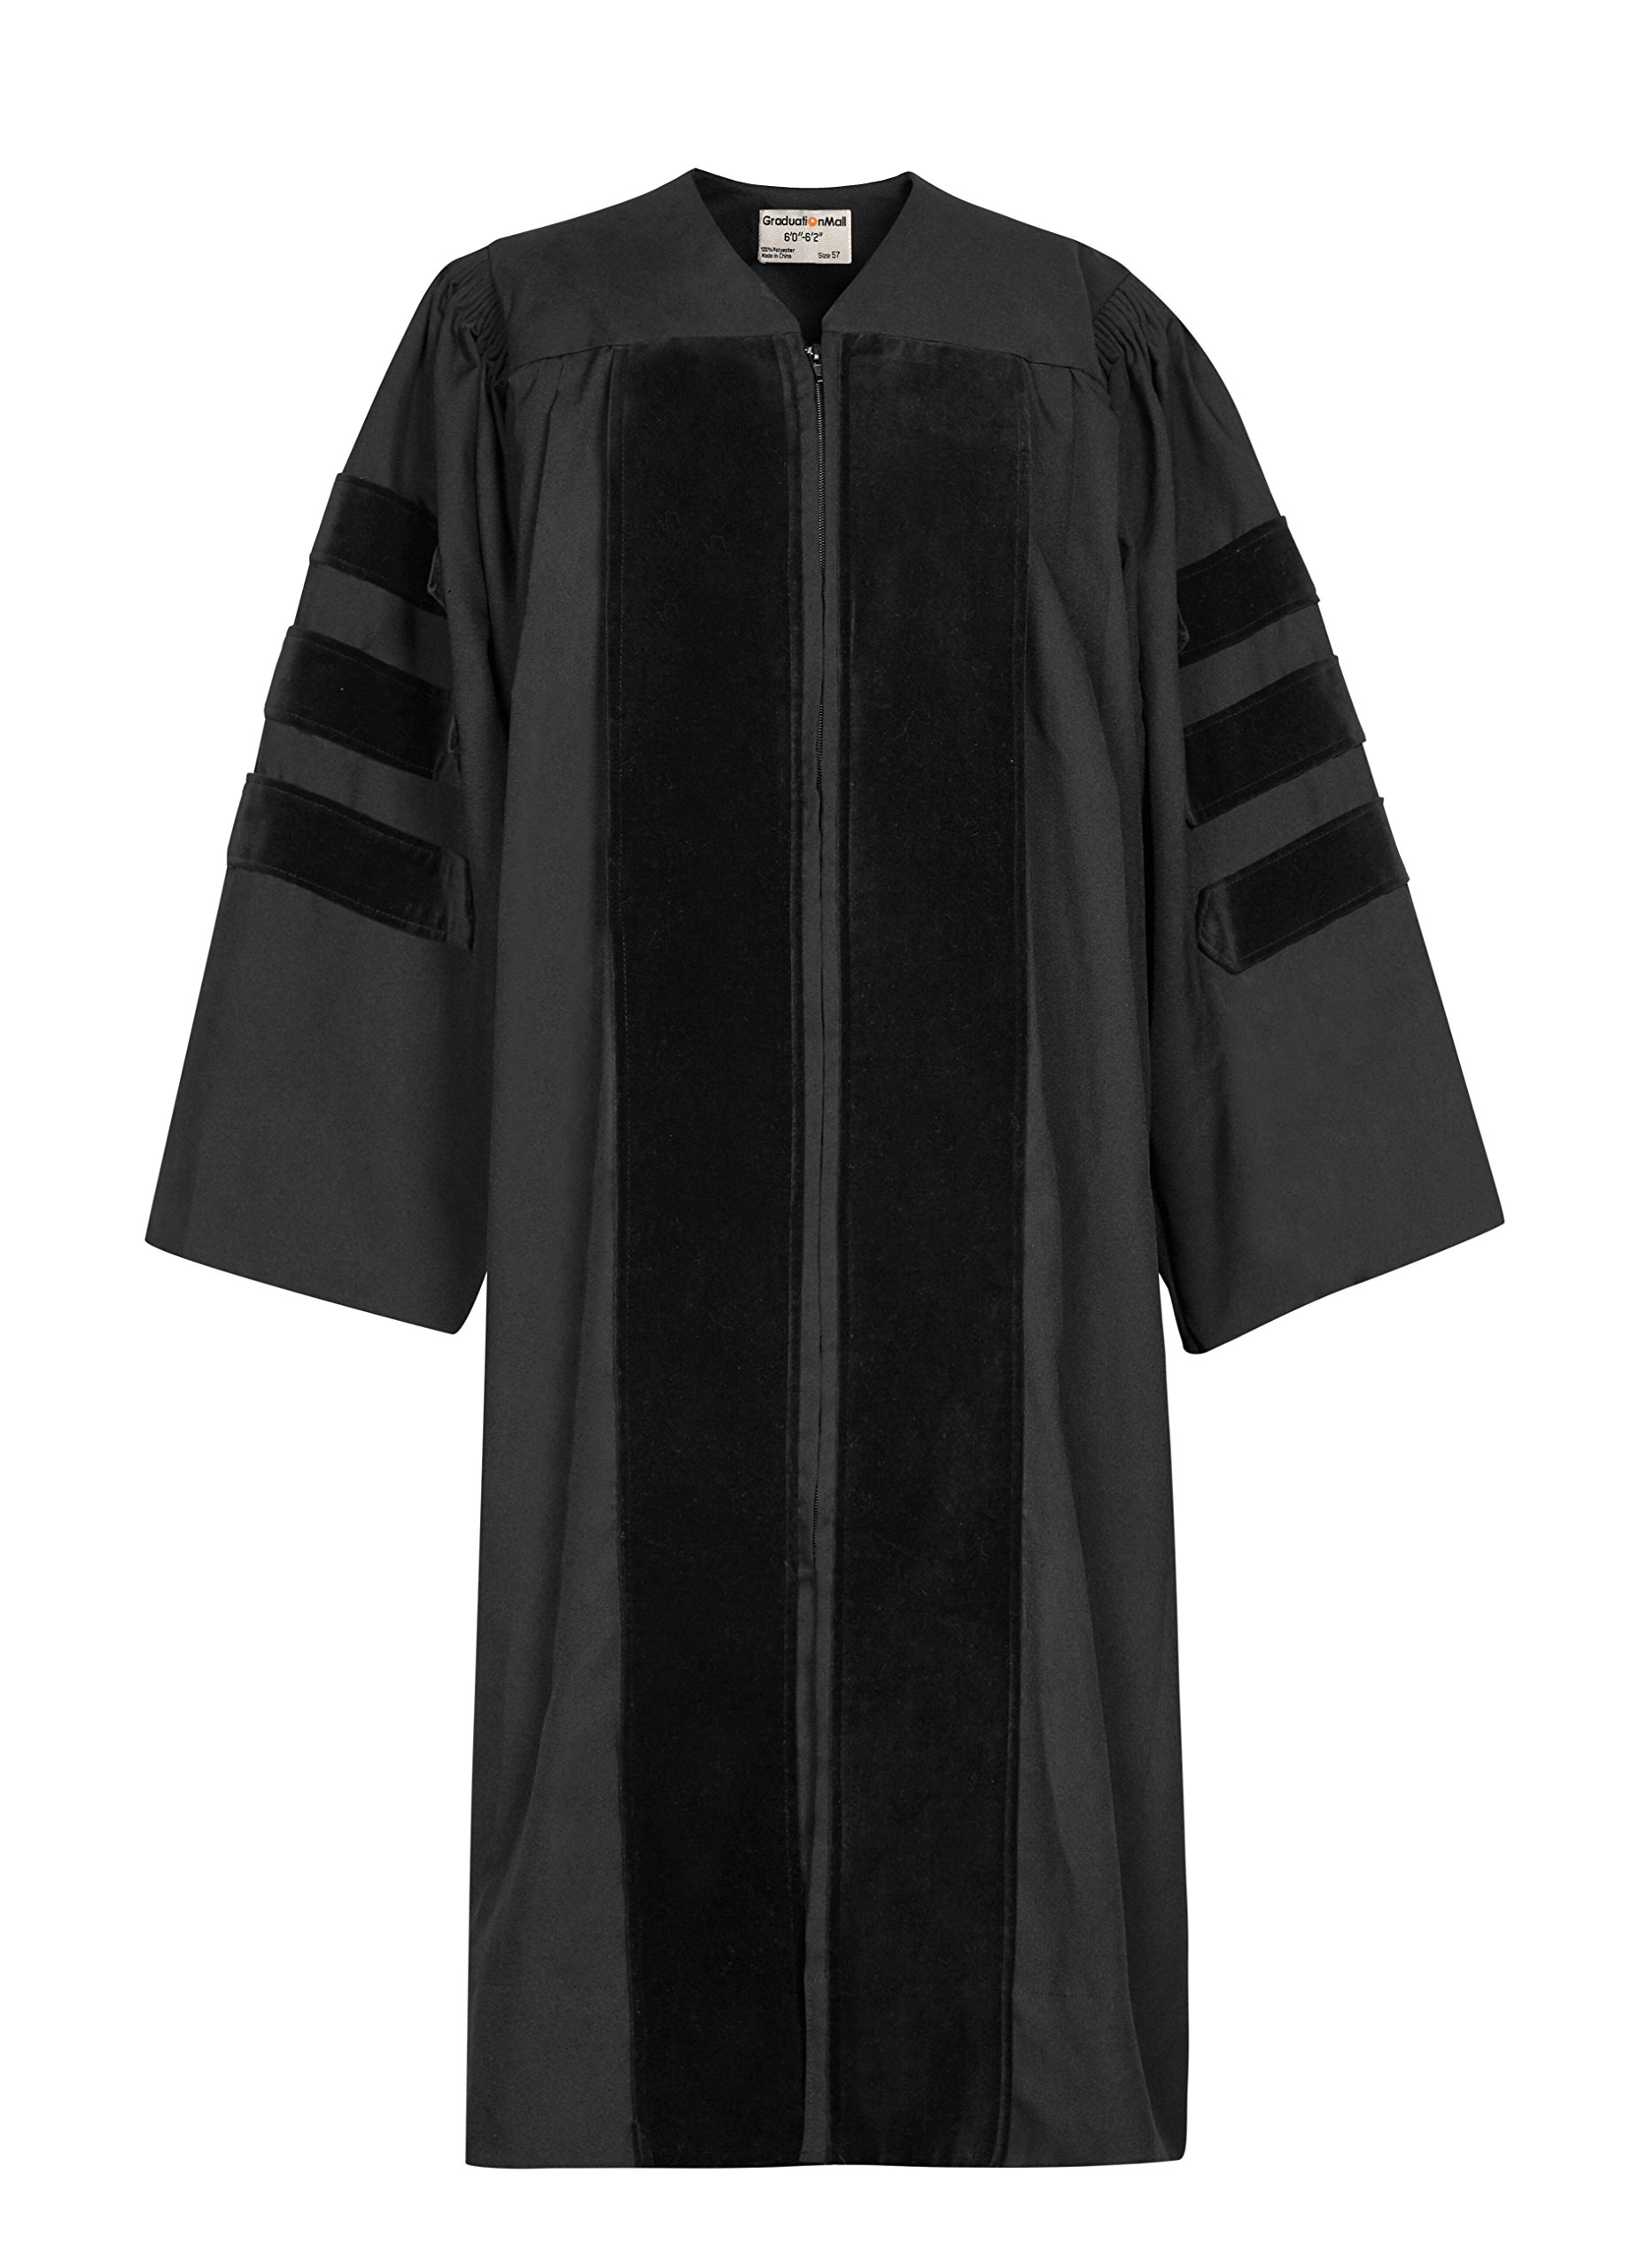 GraduationMall Unisex-adult's Classic Doctoral Graduation Gown 48(5'3''-5'5'')